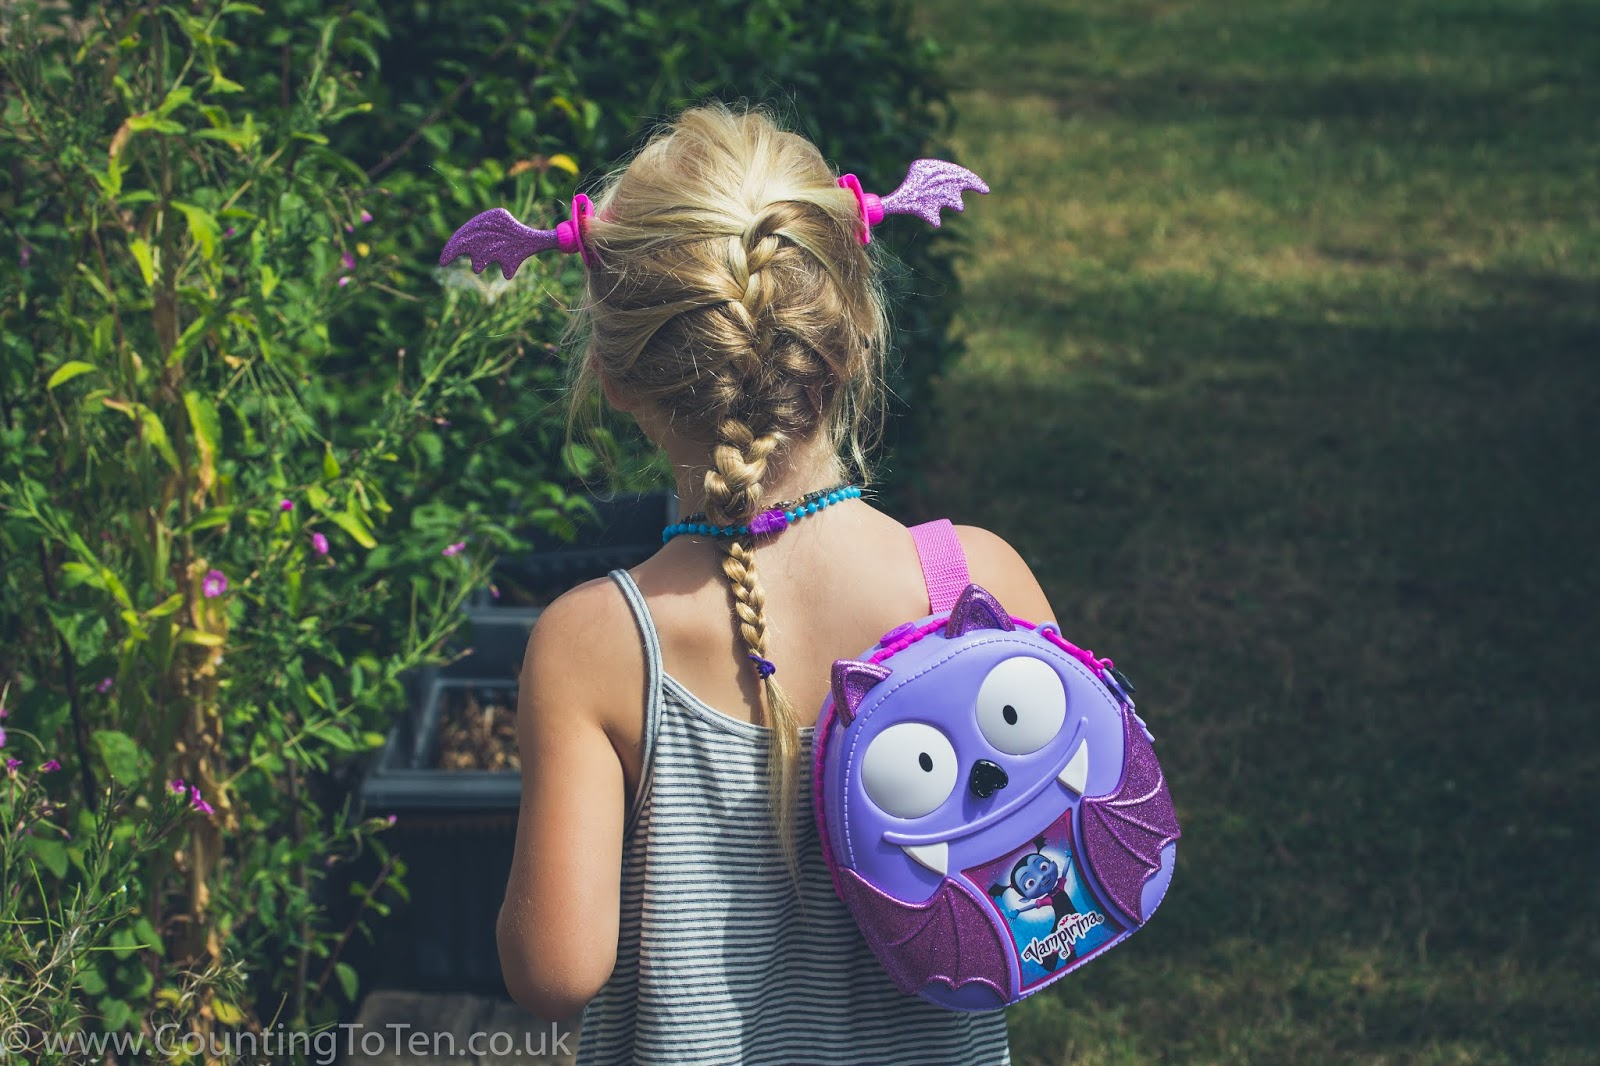 b5202273c32 A rear view of the a young girl wearing the Bootastic Backpack and  accessories from the